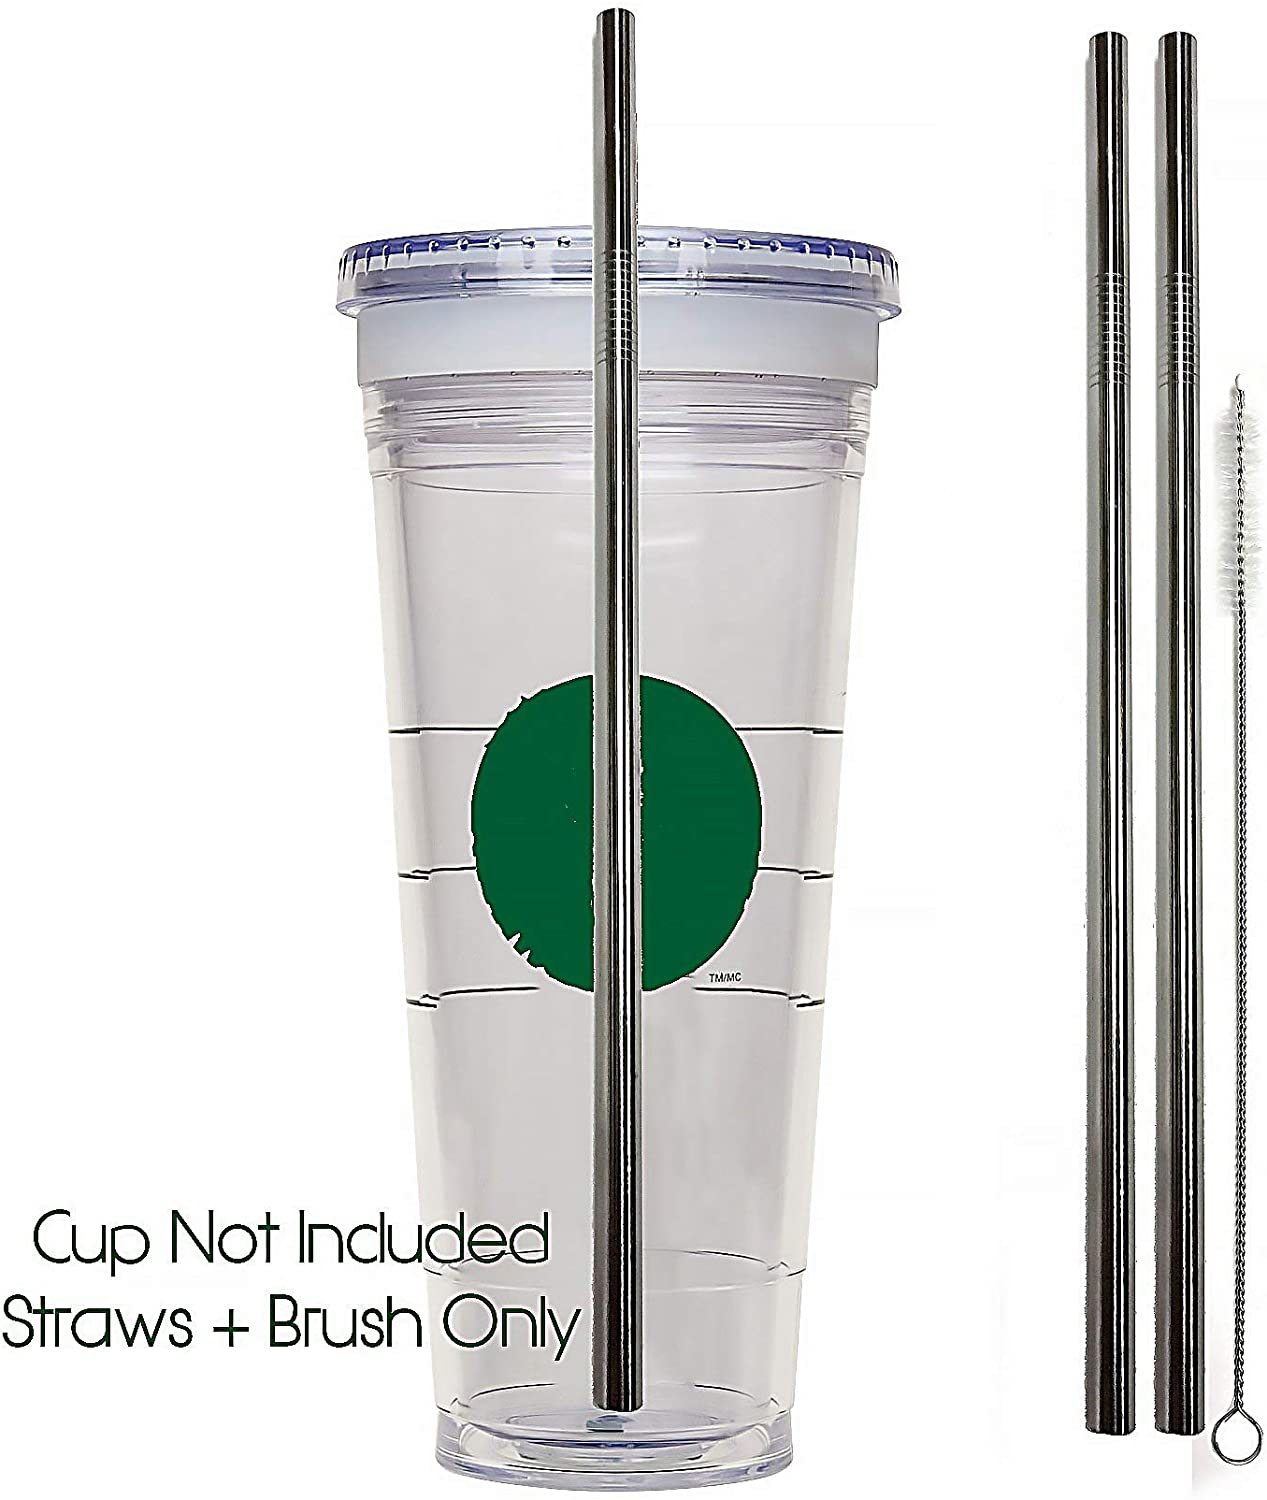 Venti Travel Mug Replacement Straws 2qty - Stainless Steel For Hot & Cold To-Go Drink Cups